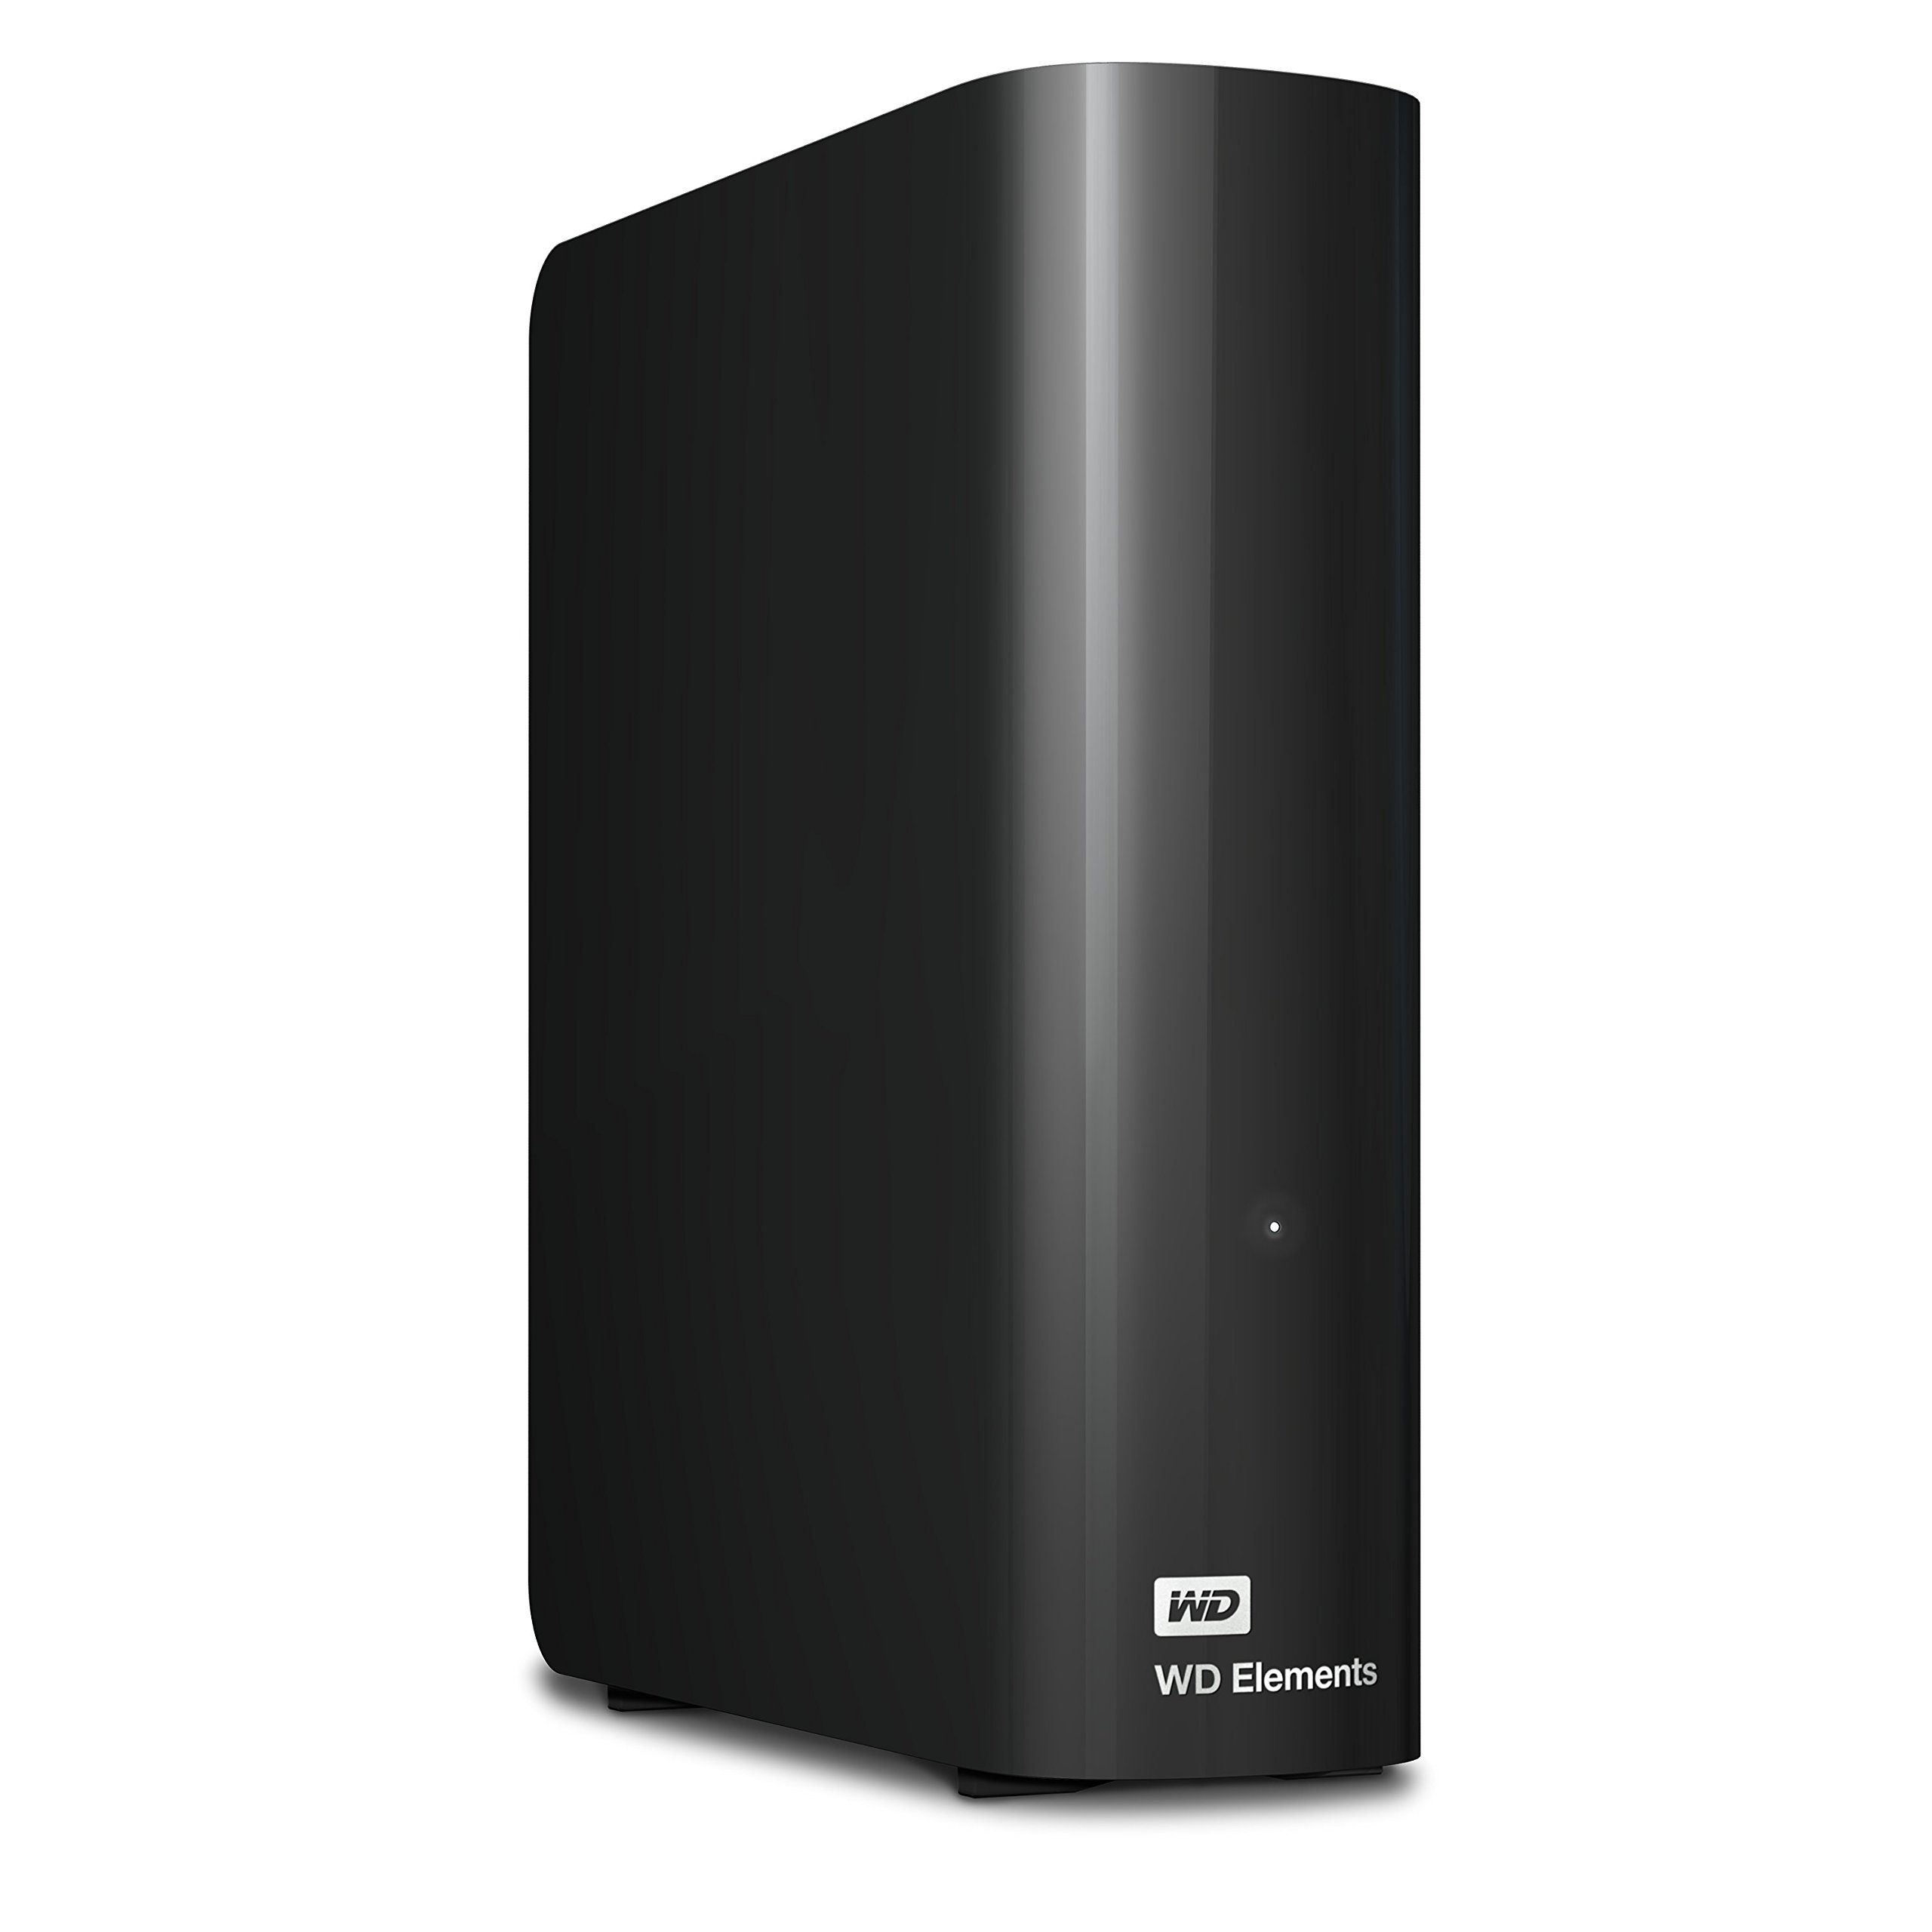 WD 10TB Elements Desktop Hard Drive - USB 3.0 - WDBWLG0100HBK-NESN by Western Digital